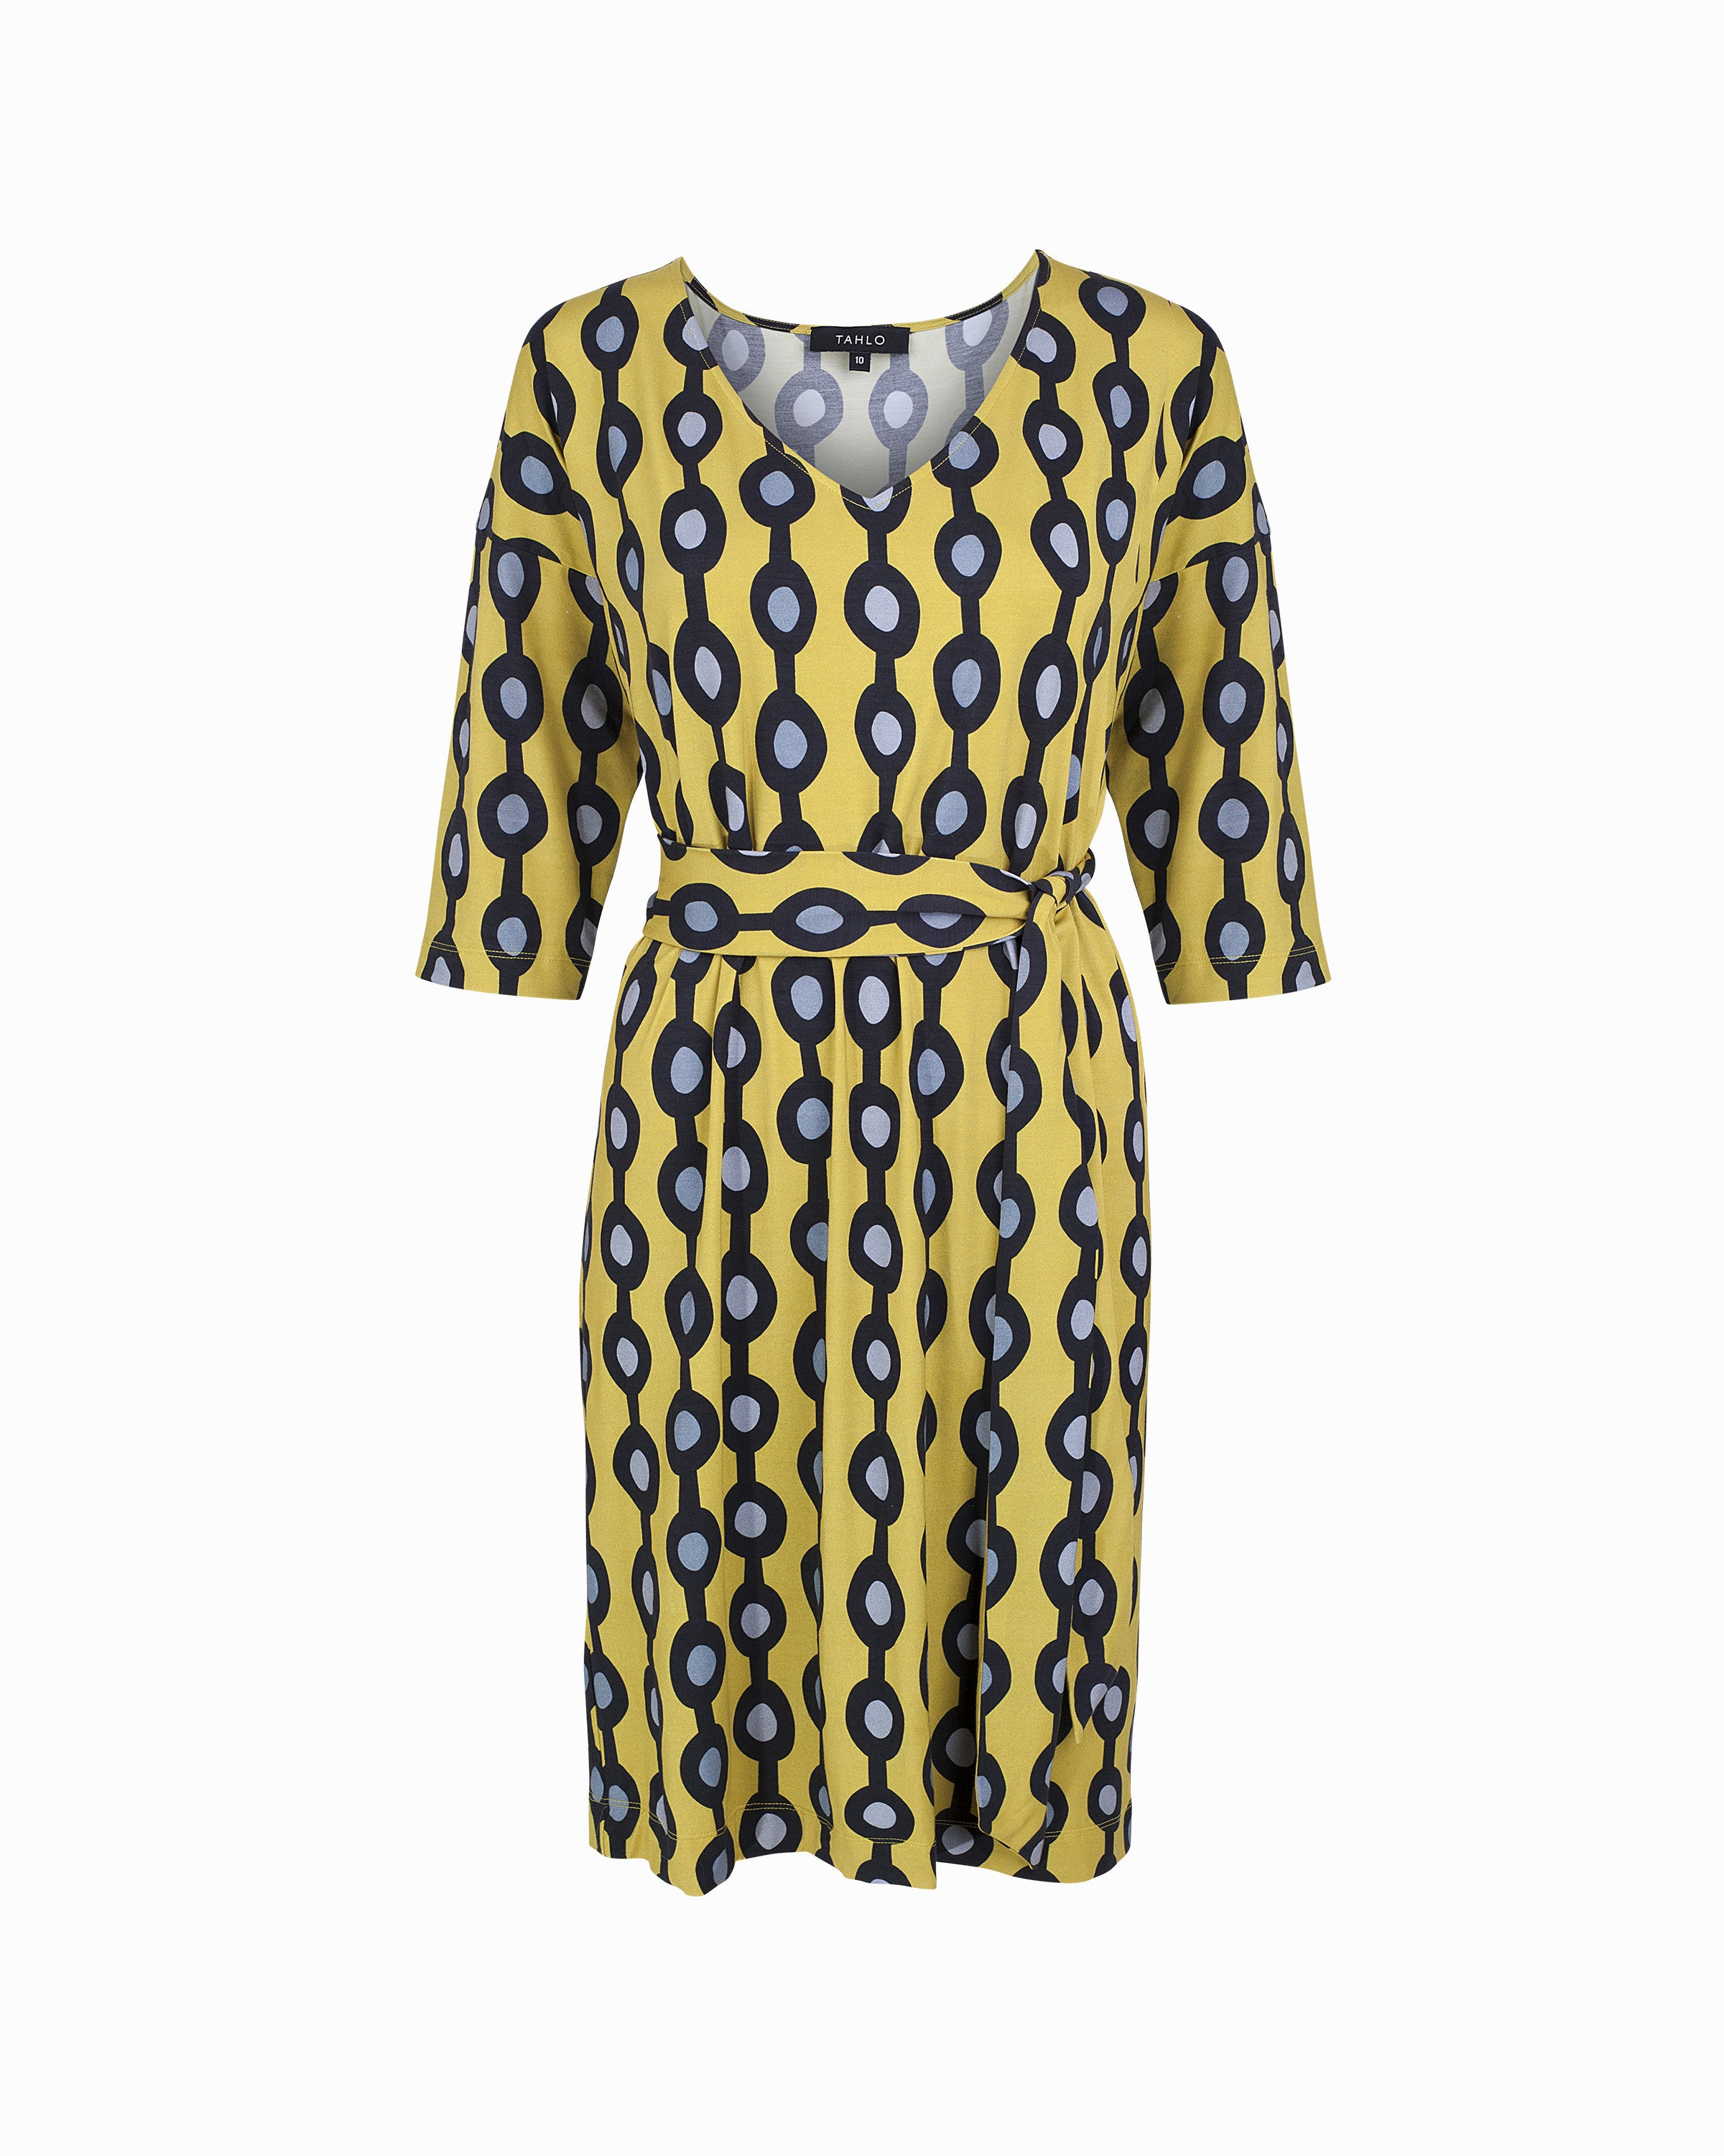 Saskia Square Dress - Yellow Chain Print